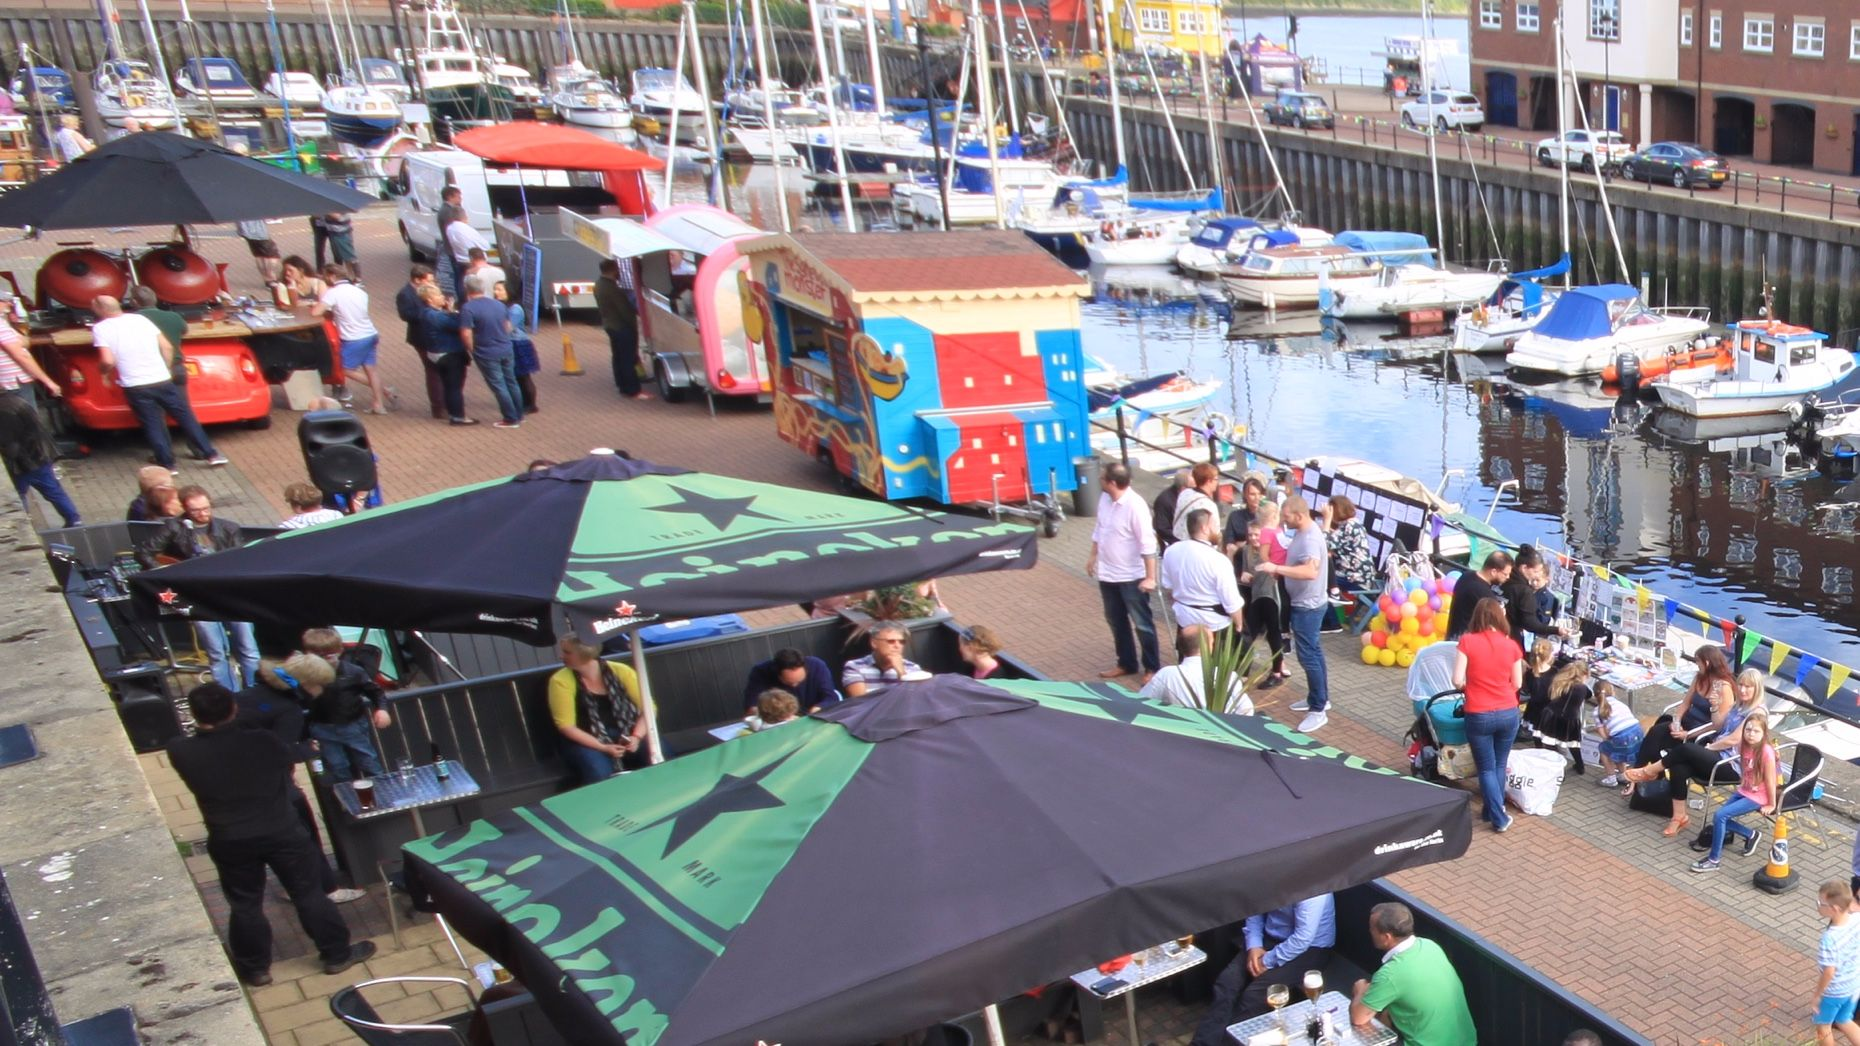 St. Peter's Fete, St. Peter's Wharf and St. Peter's Marina, Newcastle